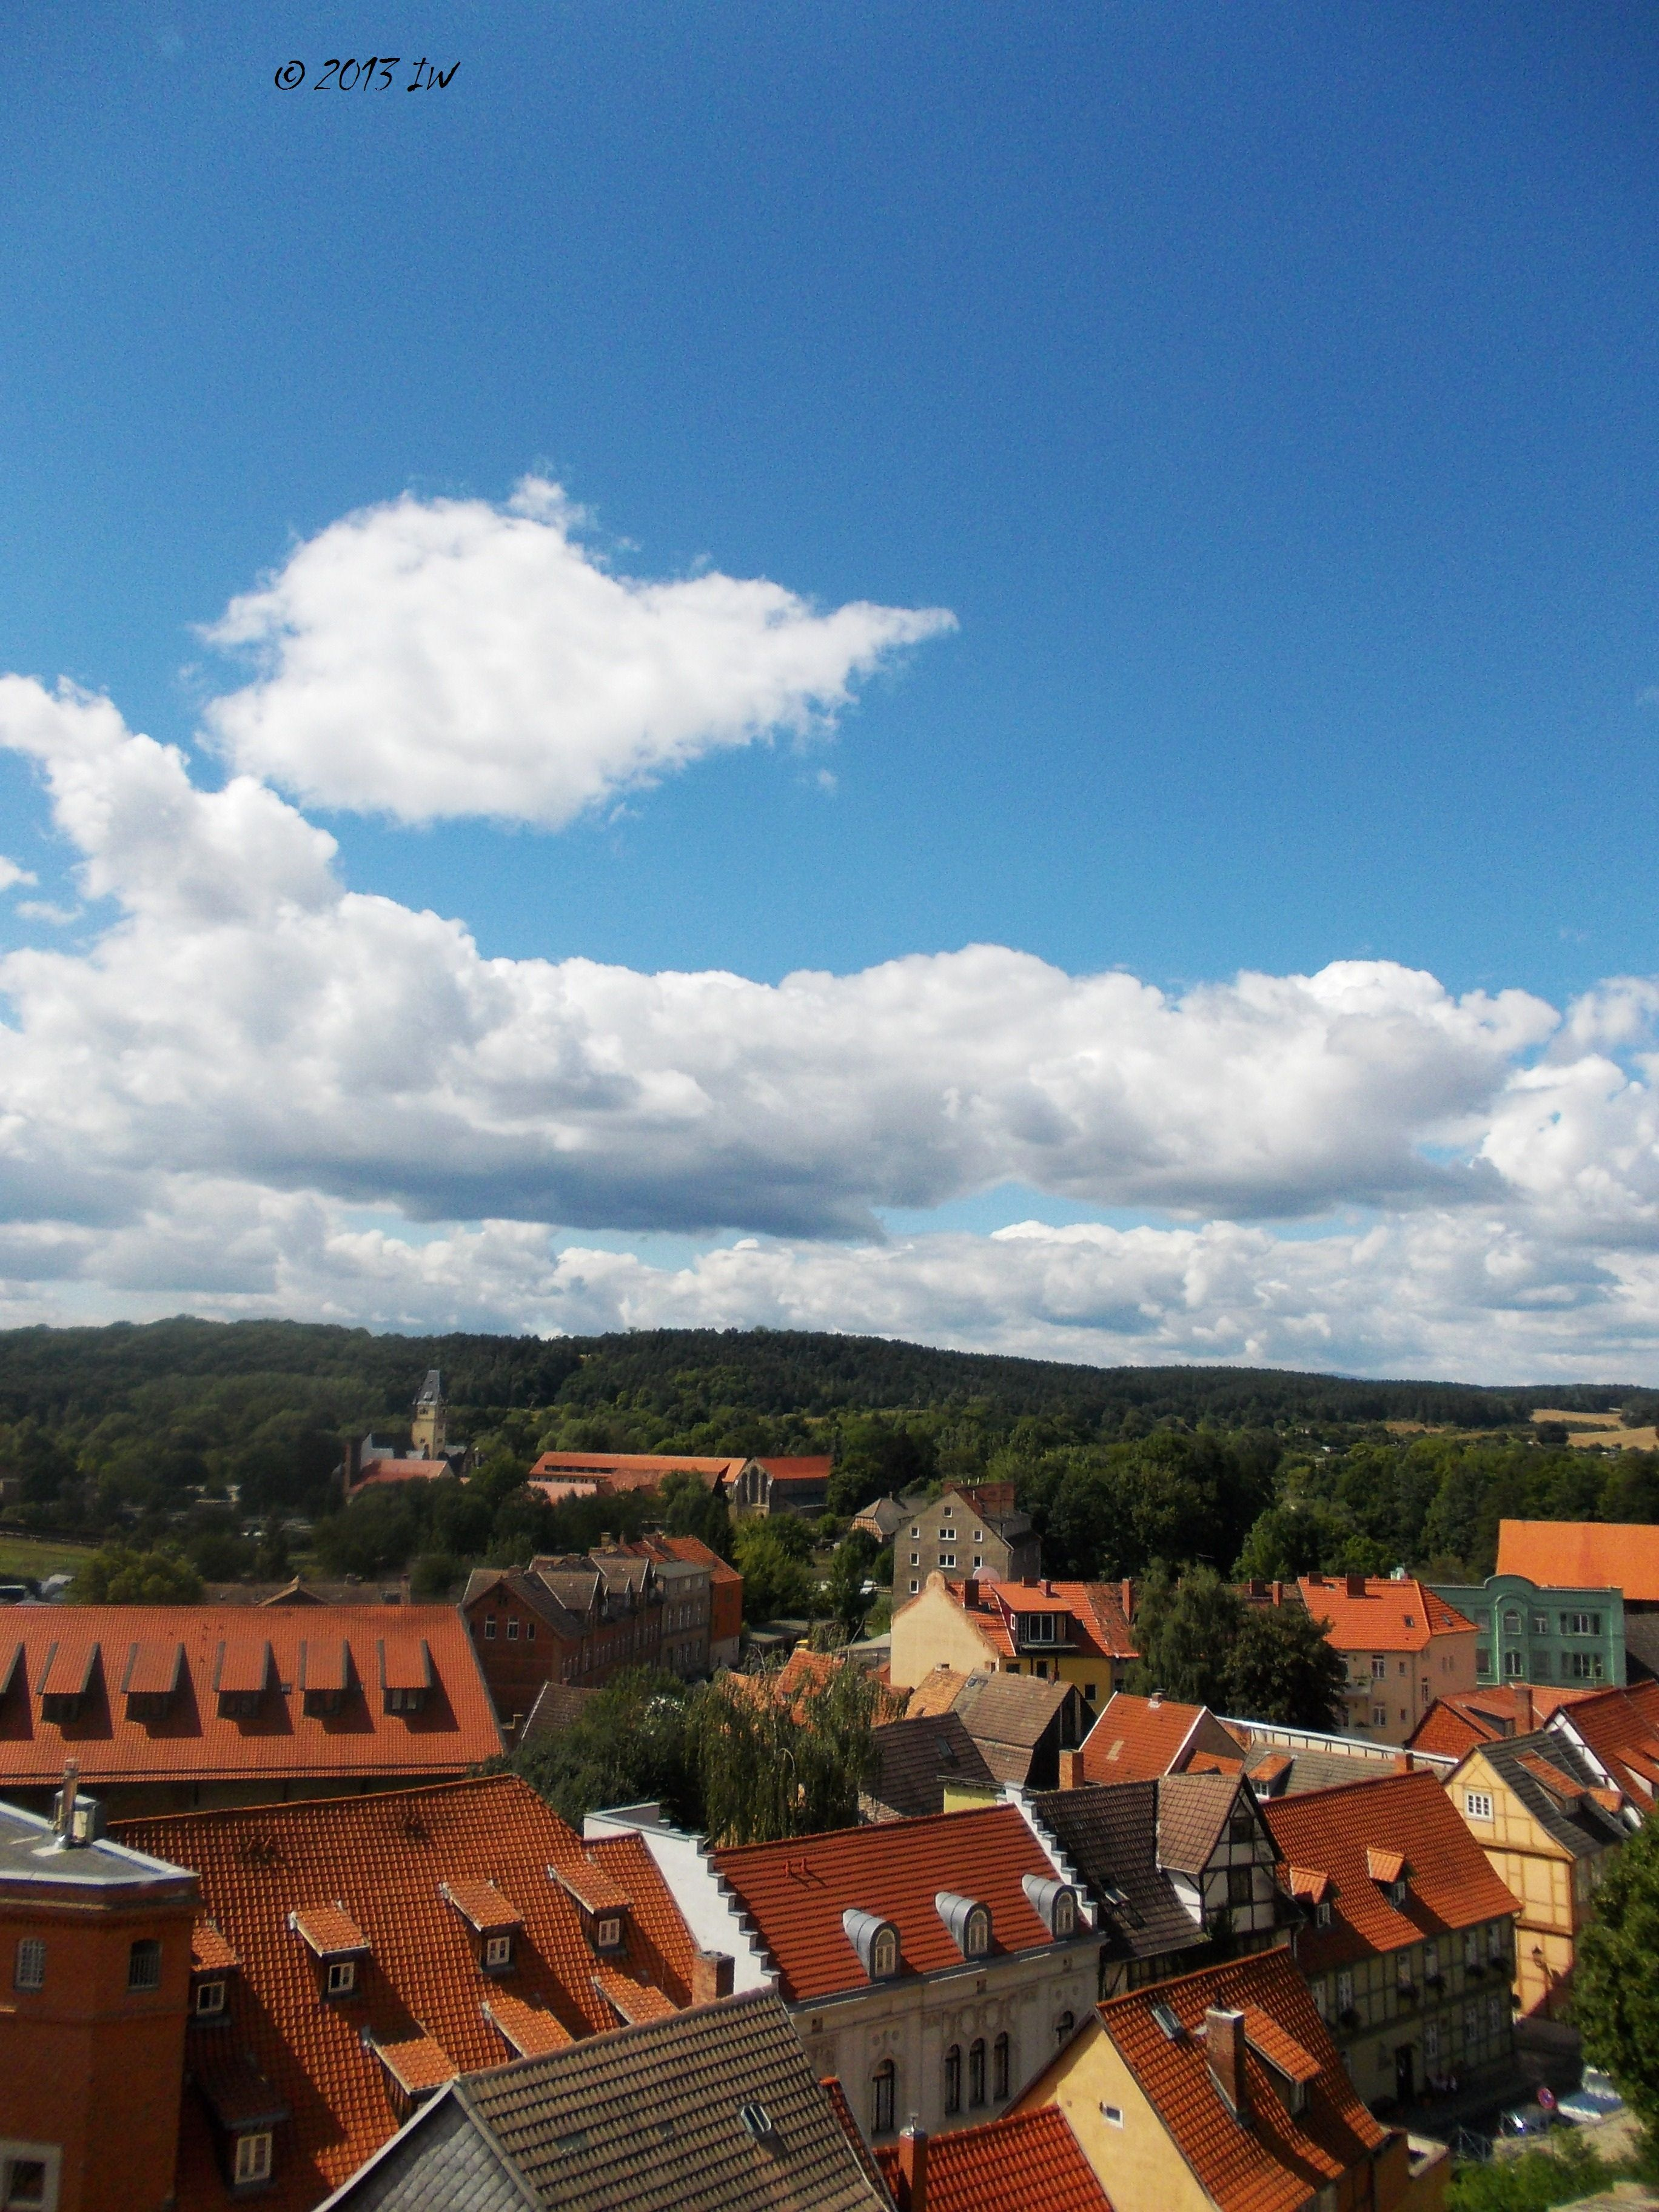 View of Quedlinburg from the top of the castle.